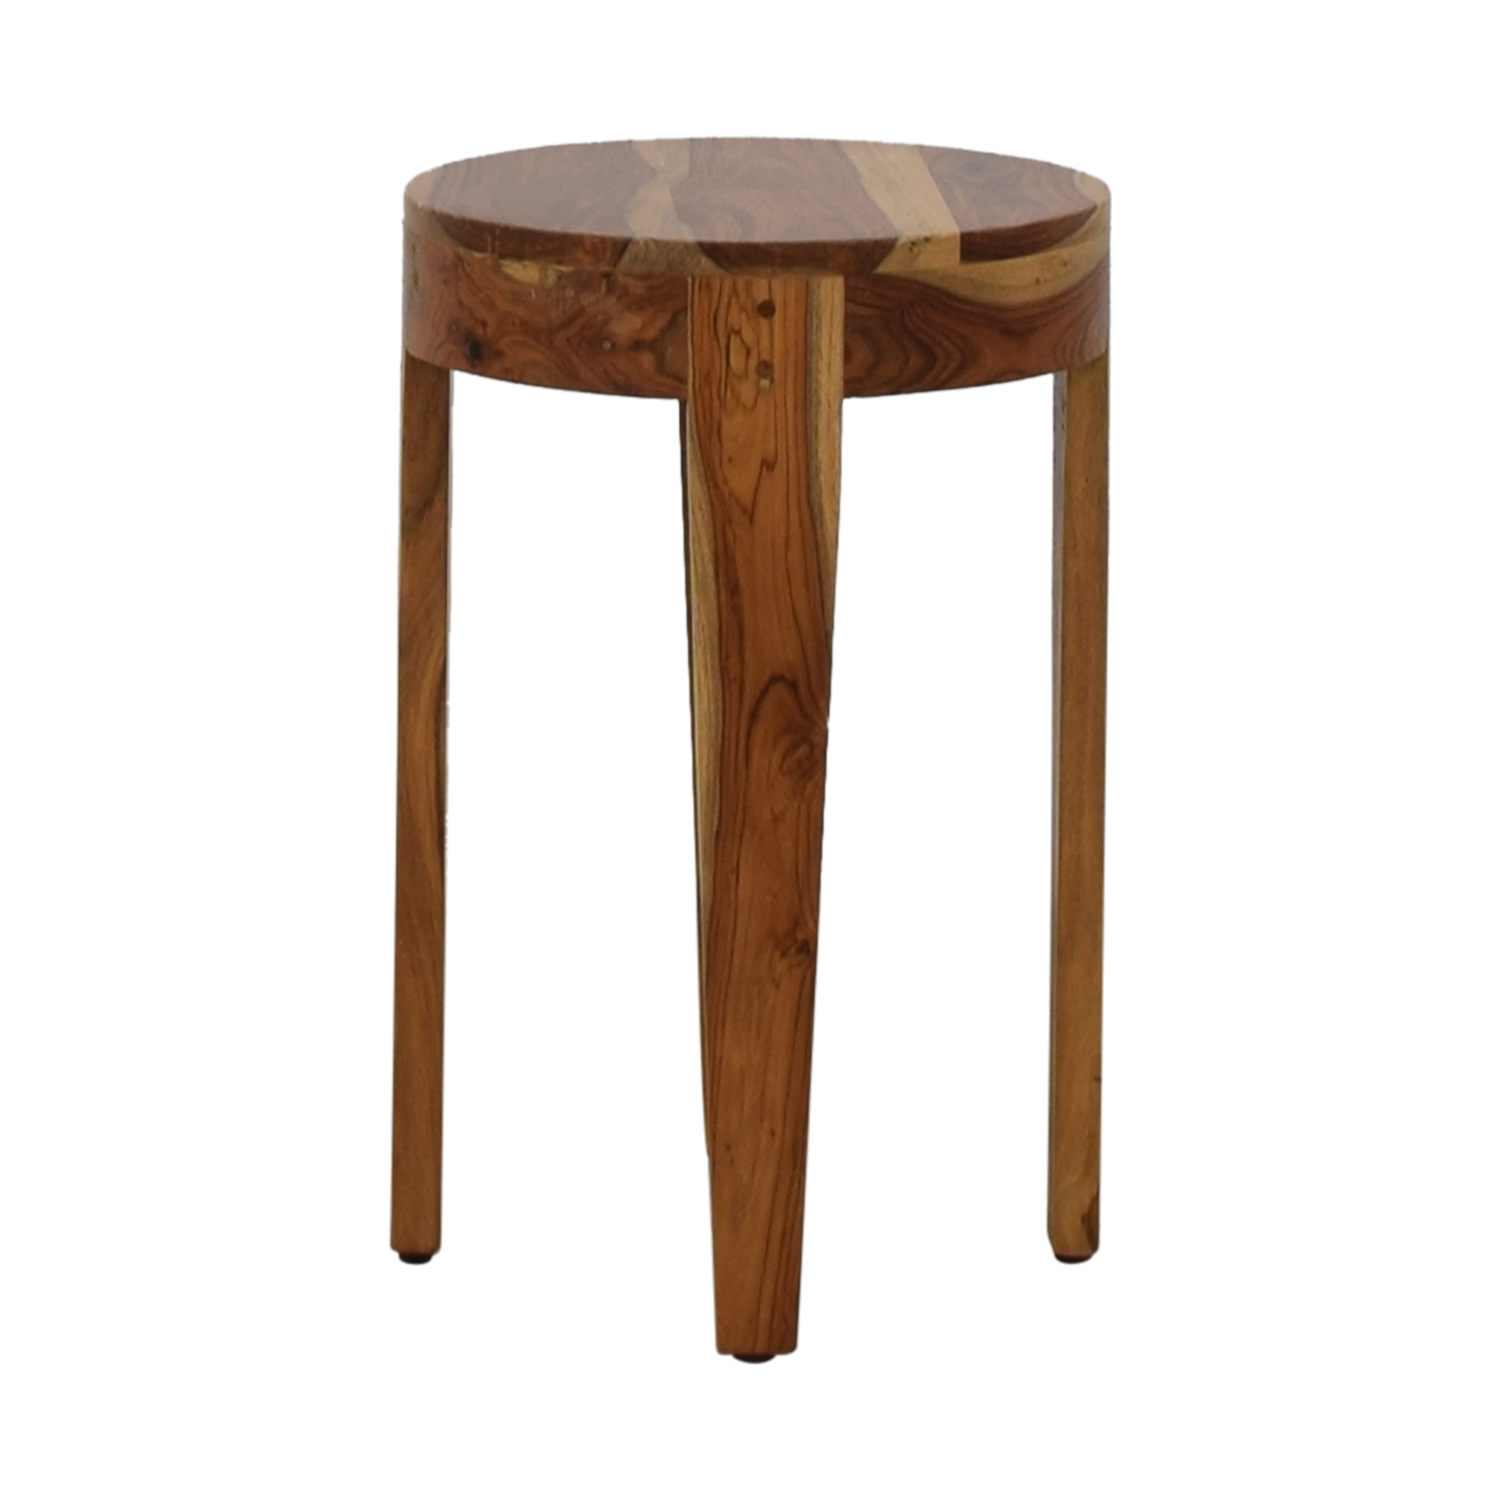 off target small round accent table tables second hand glass dining set mosaic outdoor furniture clearance reclaimed wood console pottery barn ethan allen counter stools dark